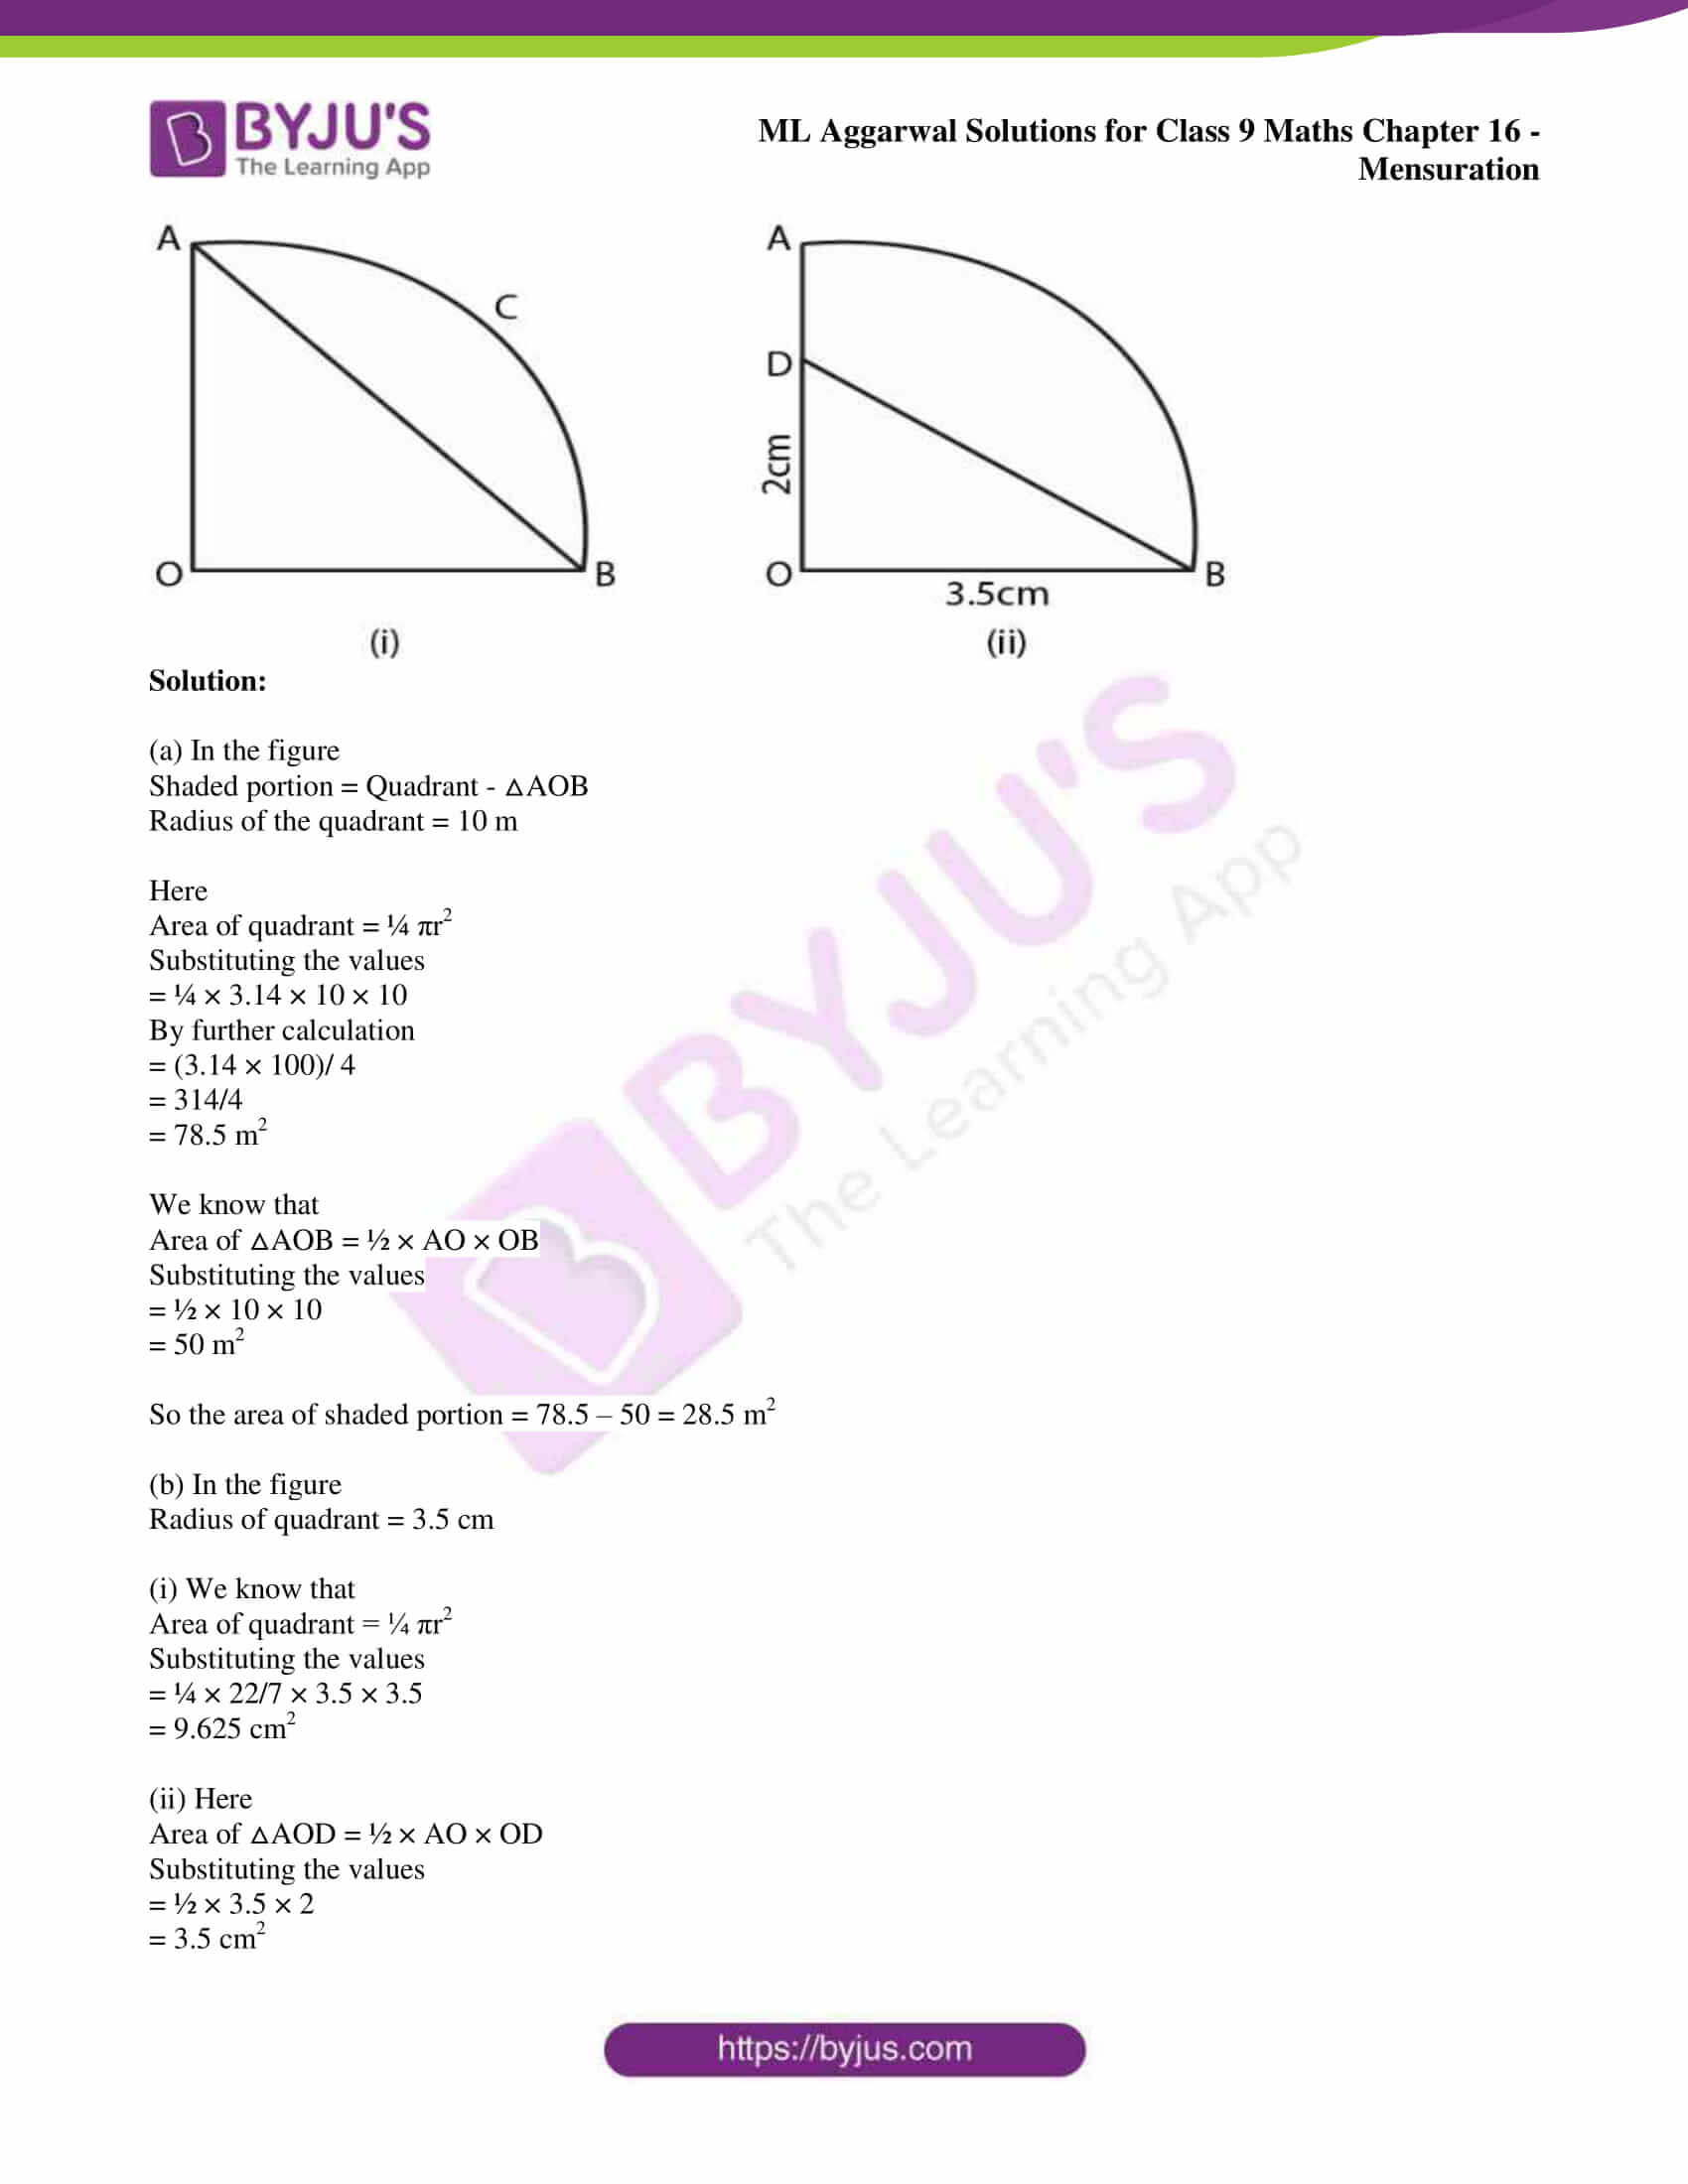 ml aggarwal solutions for class 9 maths chapter 16 089